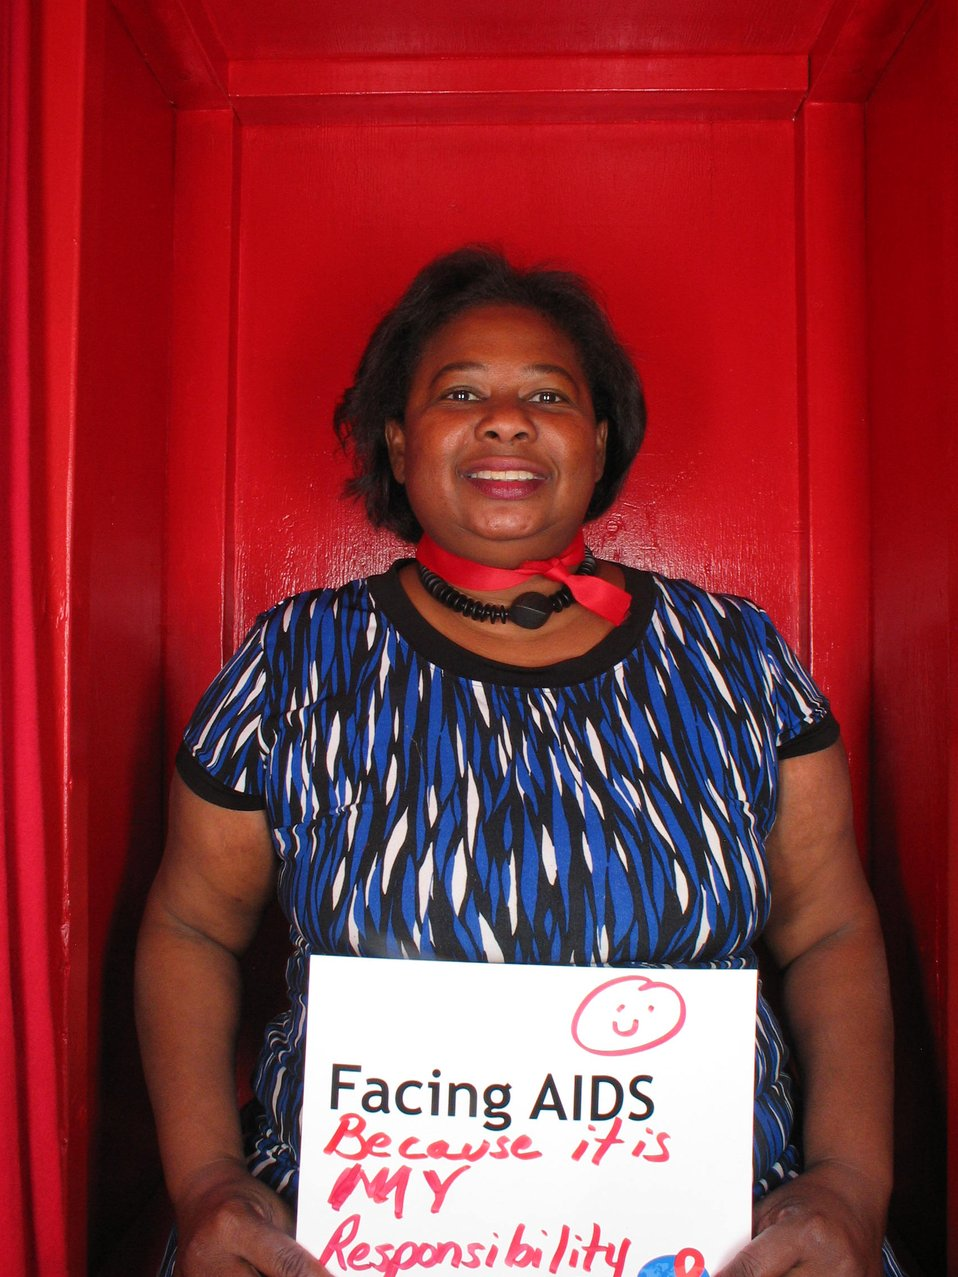 Facing AIDS because its my responsibility